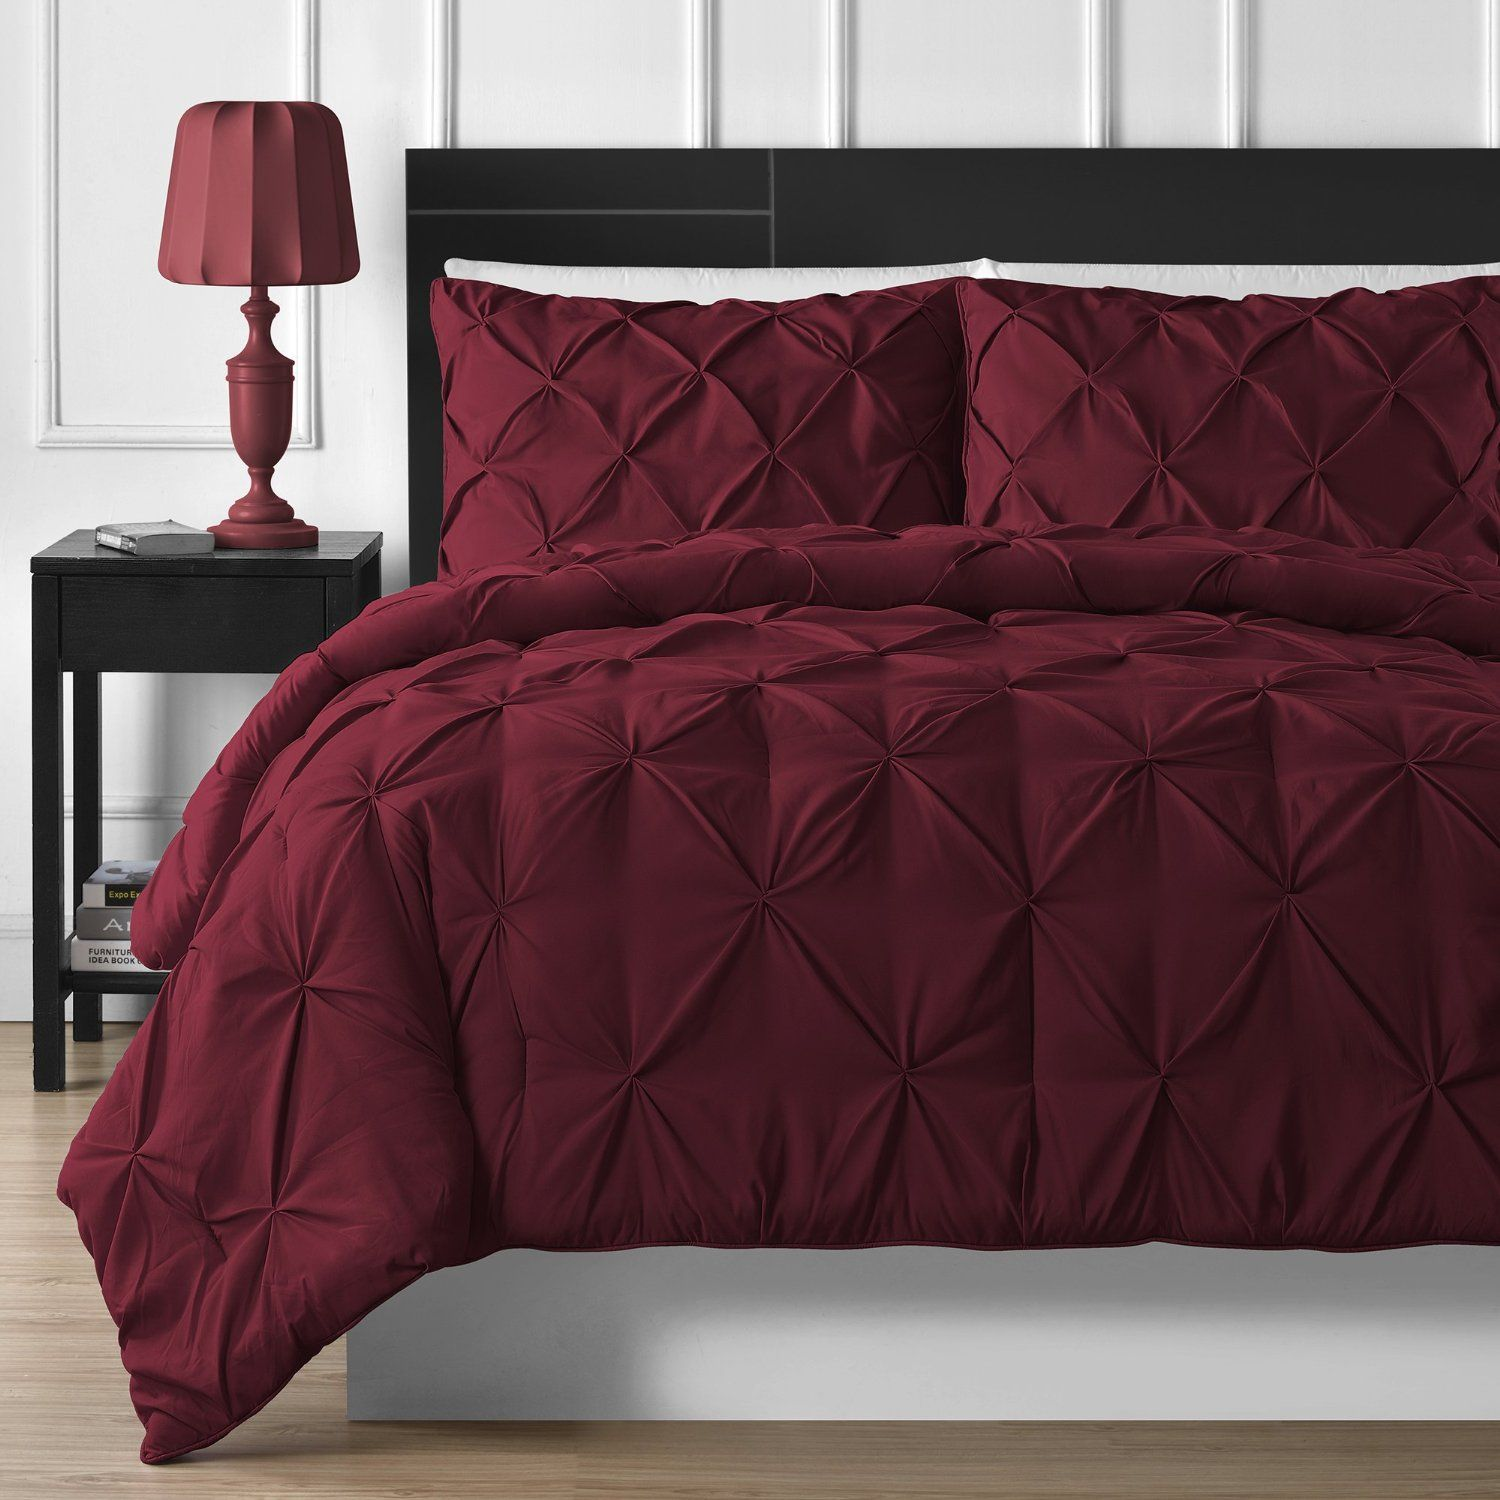 P&R Bedding 3 Piece Luxurious Pinch Pleat Comforter Set